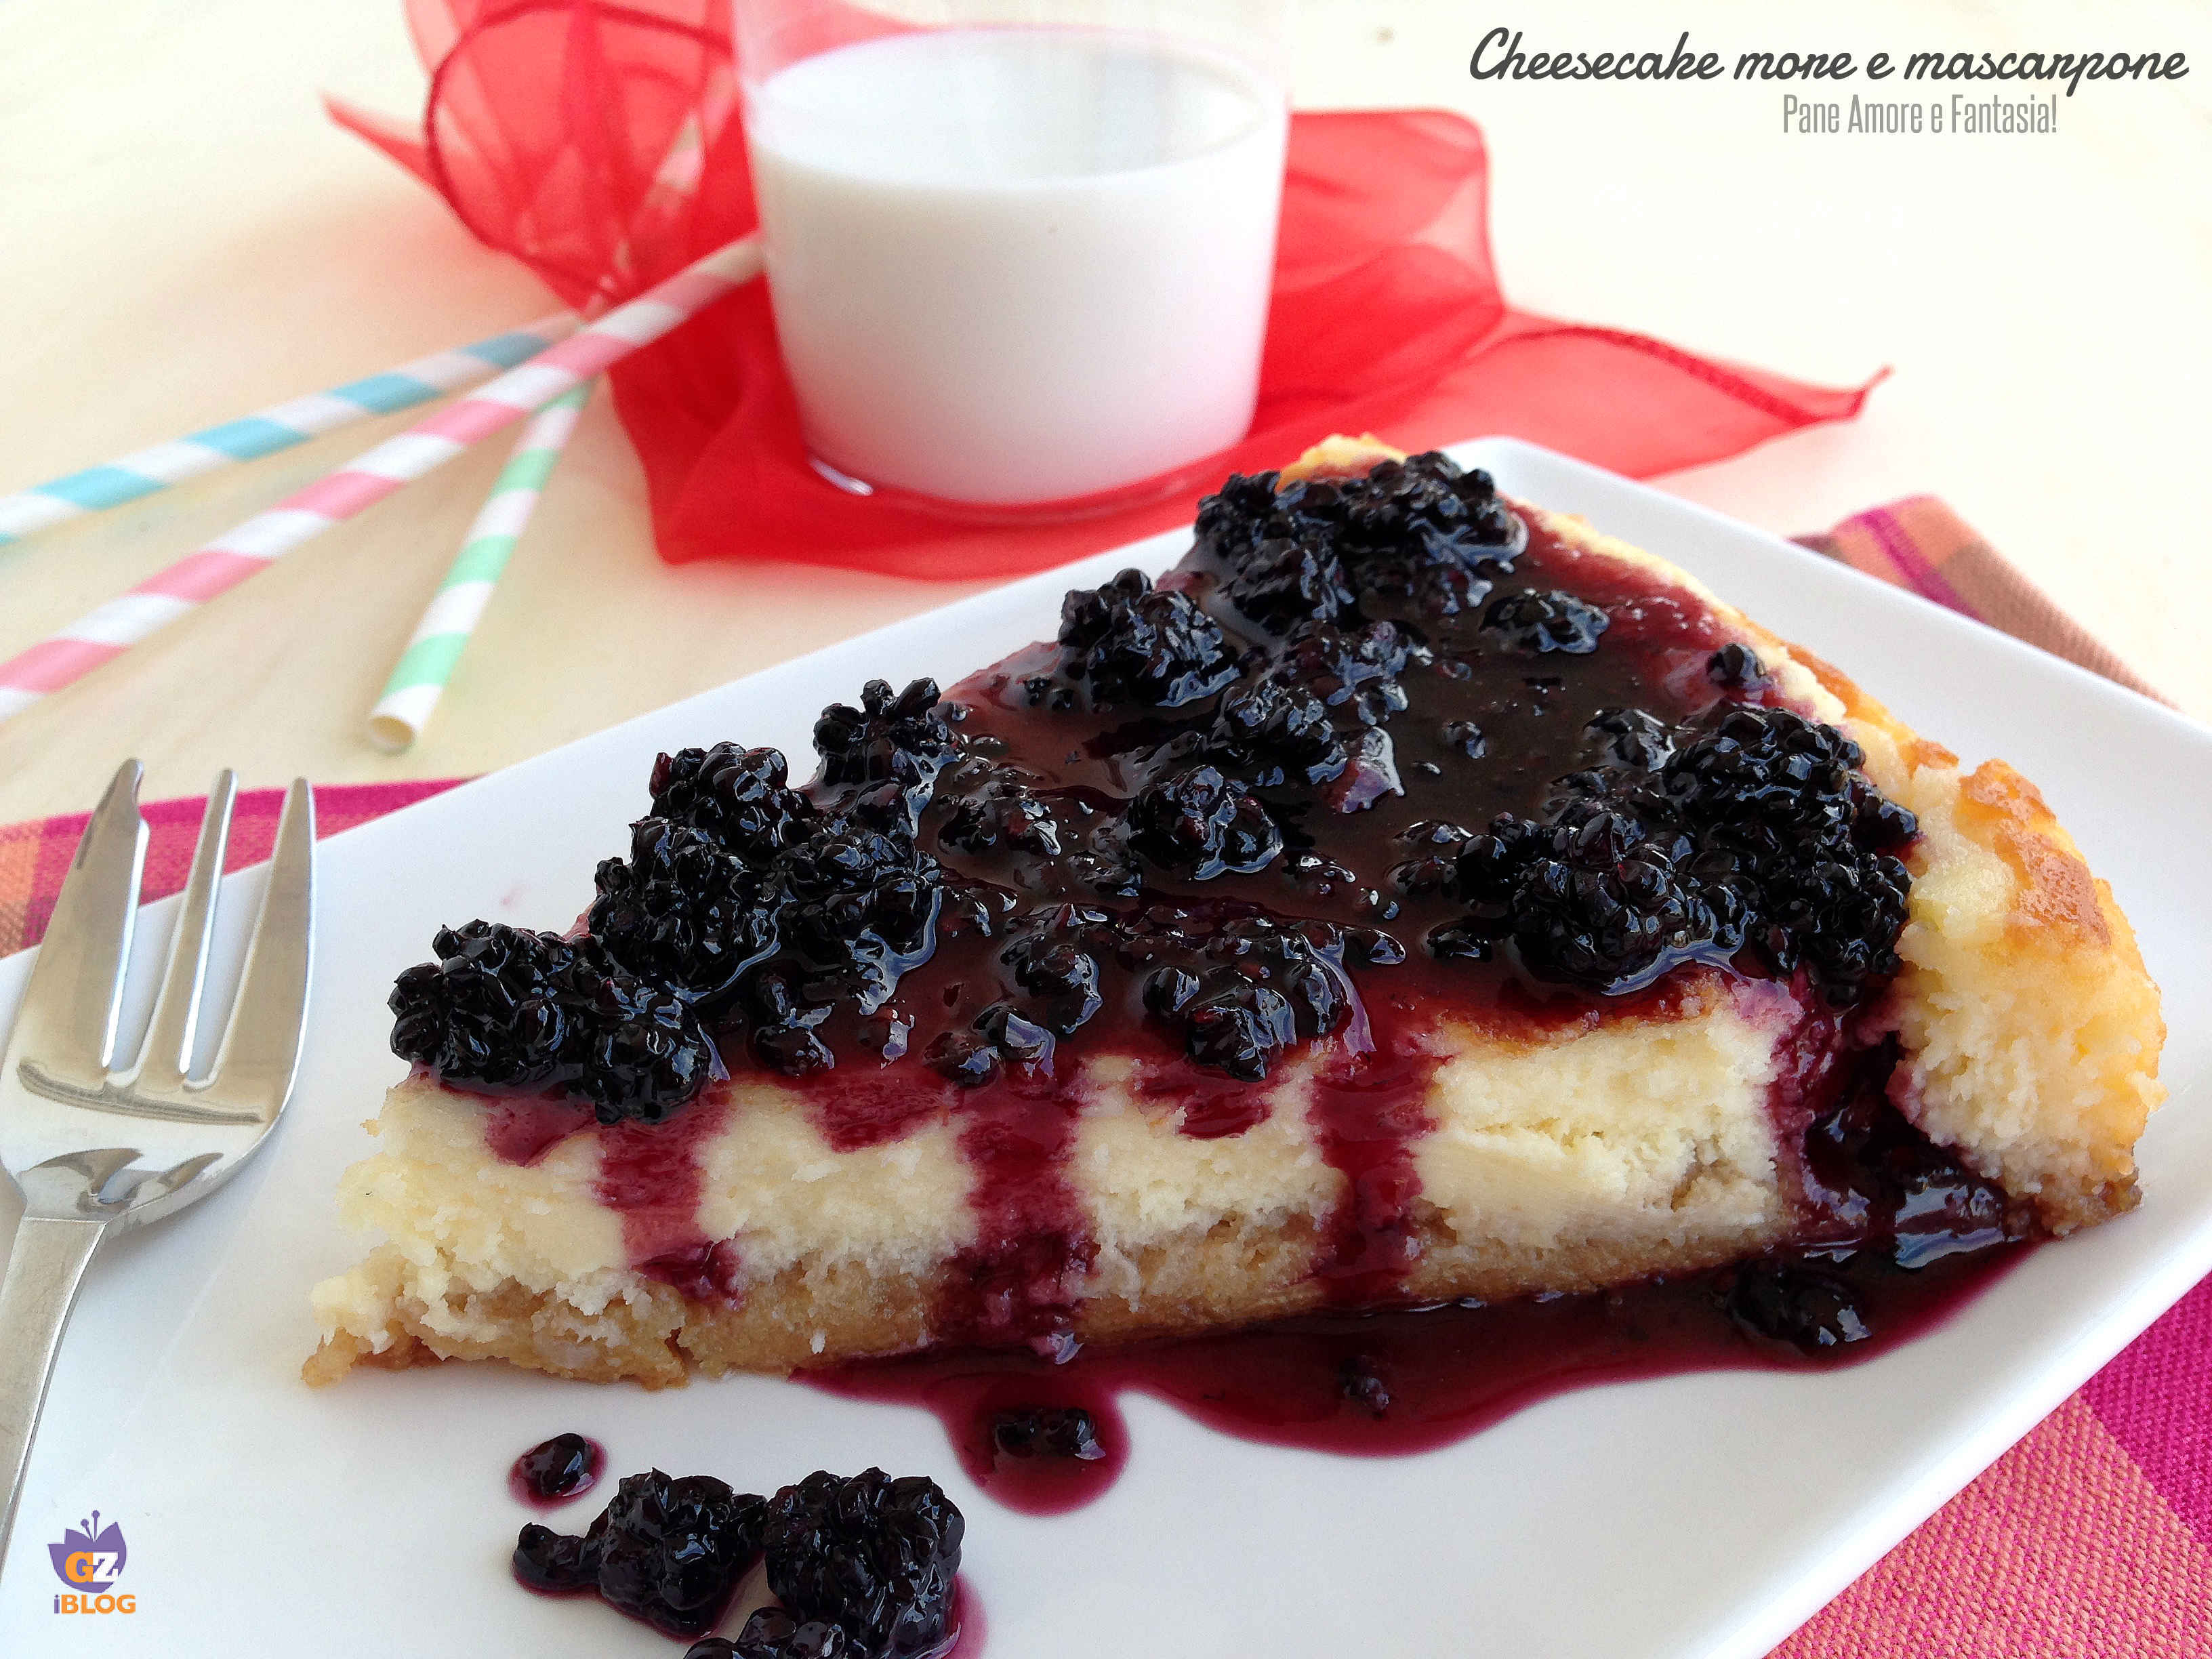 Cheesecake more e mascarpone, senza cottura